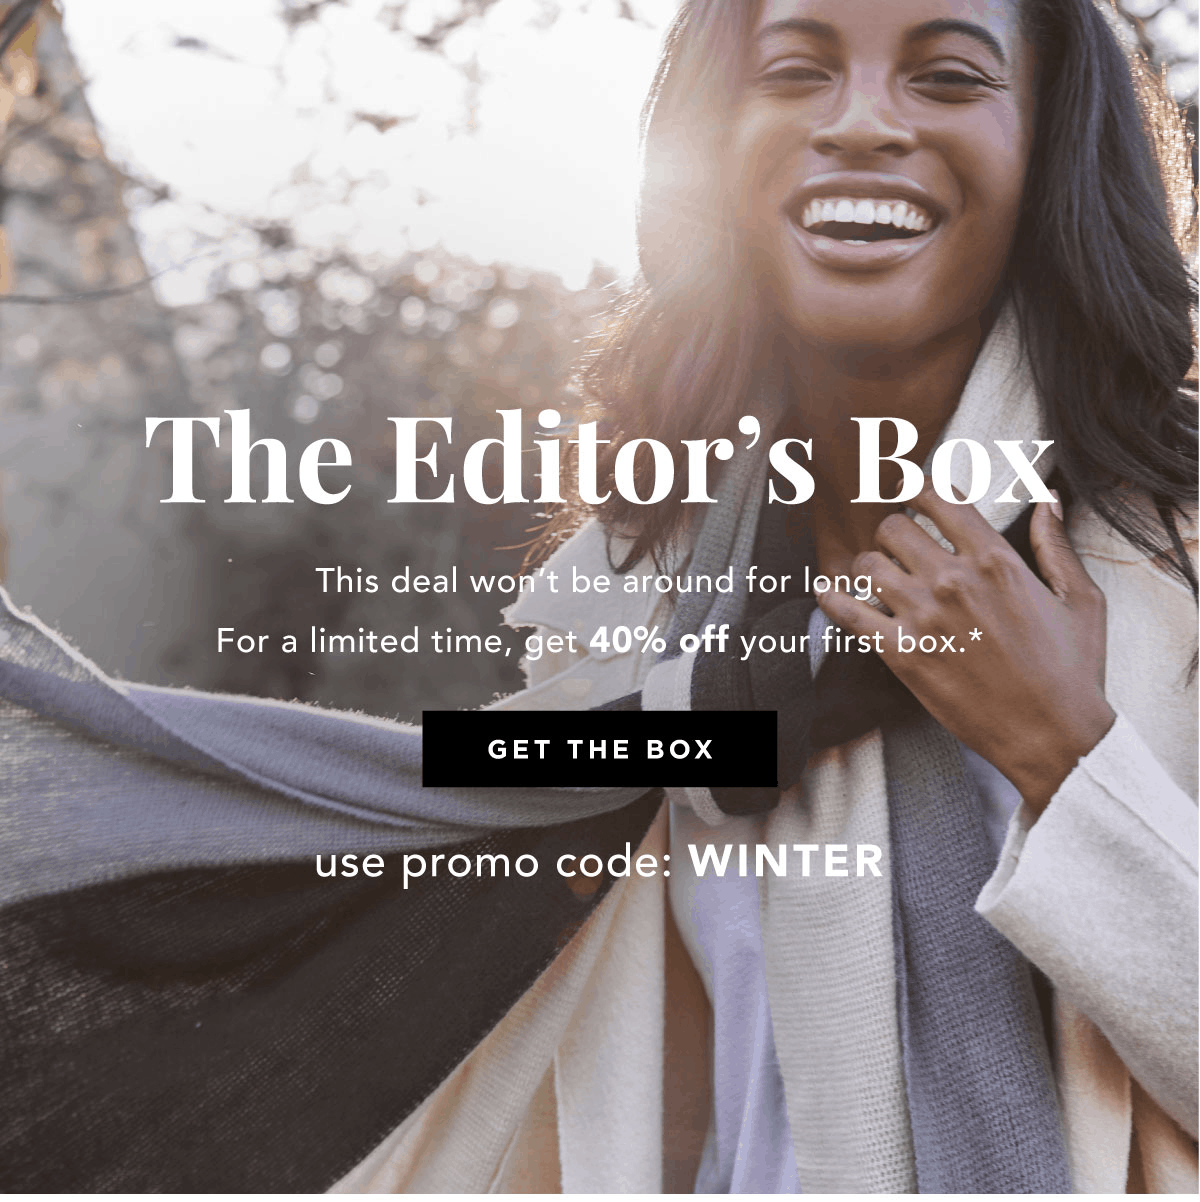 FabFitFun Box January 2019 Coupon Code: Save 40% on the Winter Editor's Box!